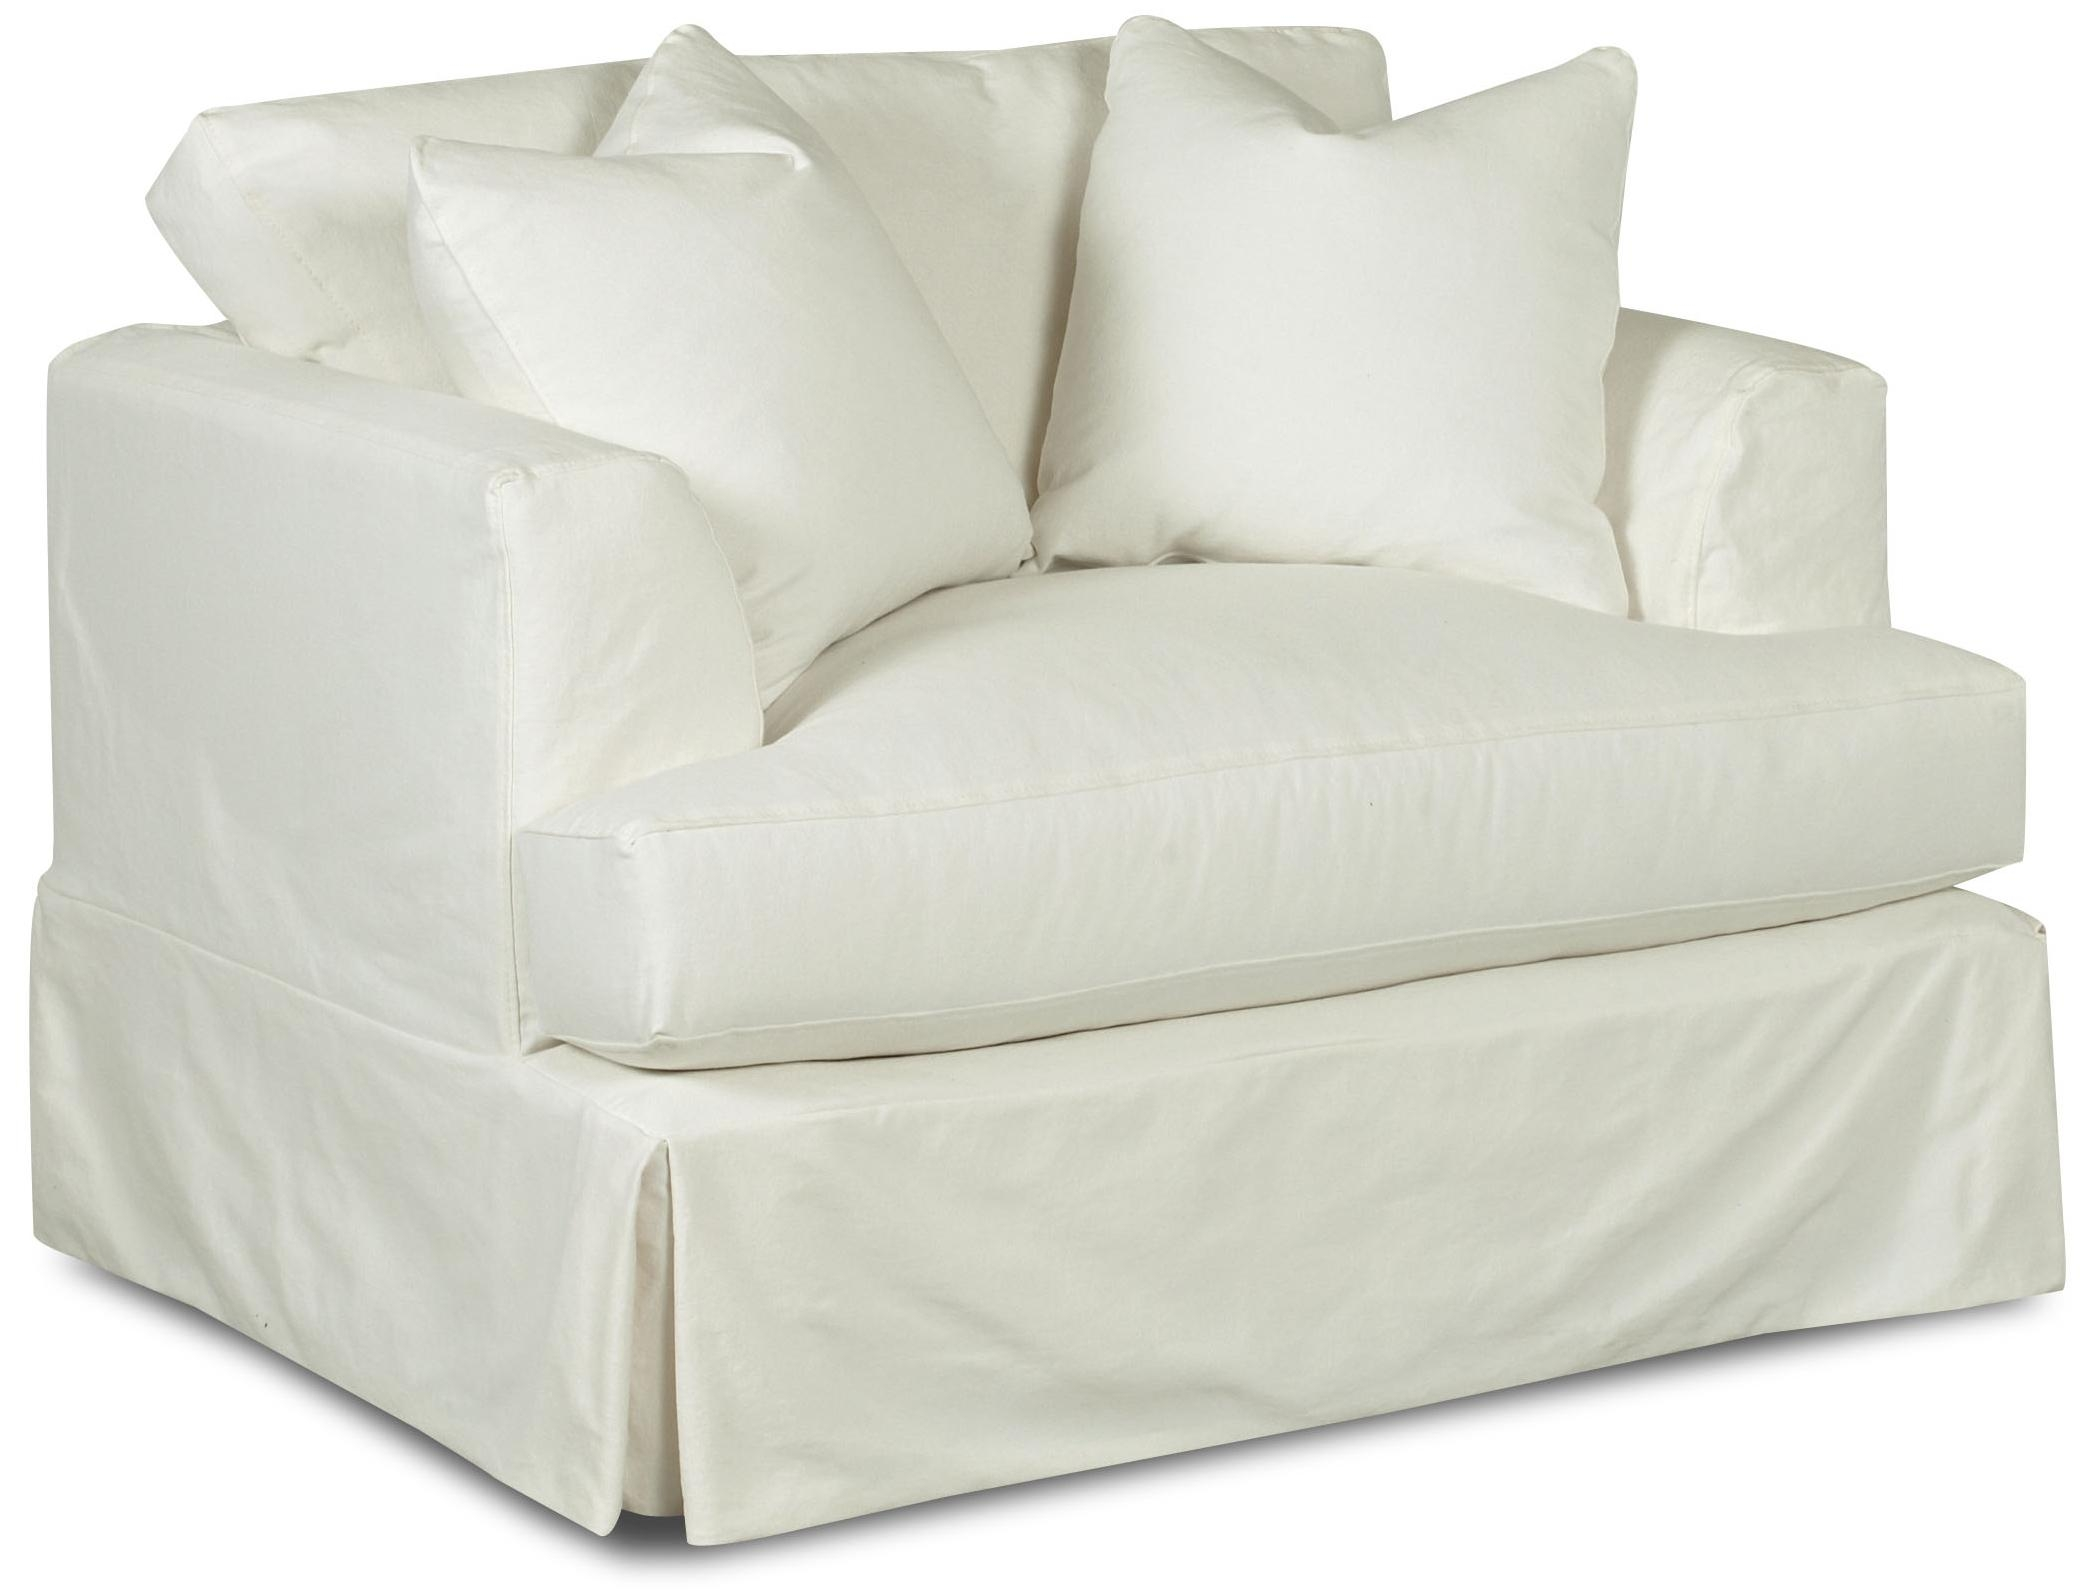 Oversized Chair Slipcovers T Cushion Home Chair Designs With Sofa And Chair Slipcovers (Image 7 of 15)